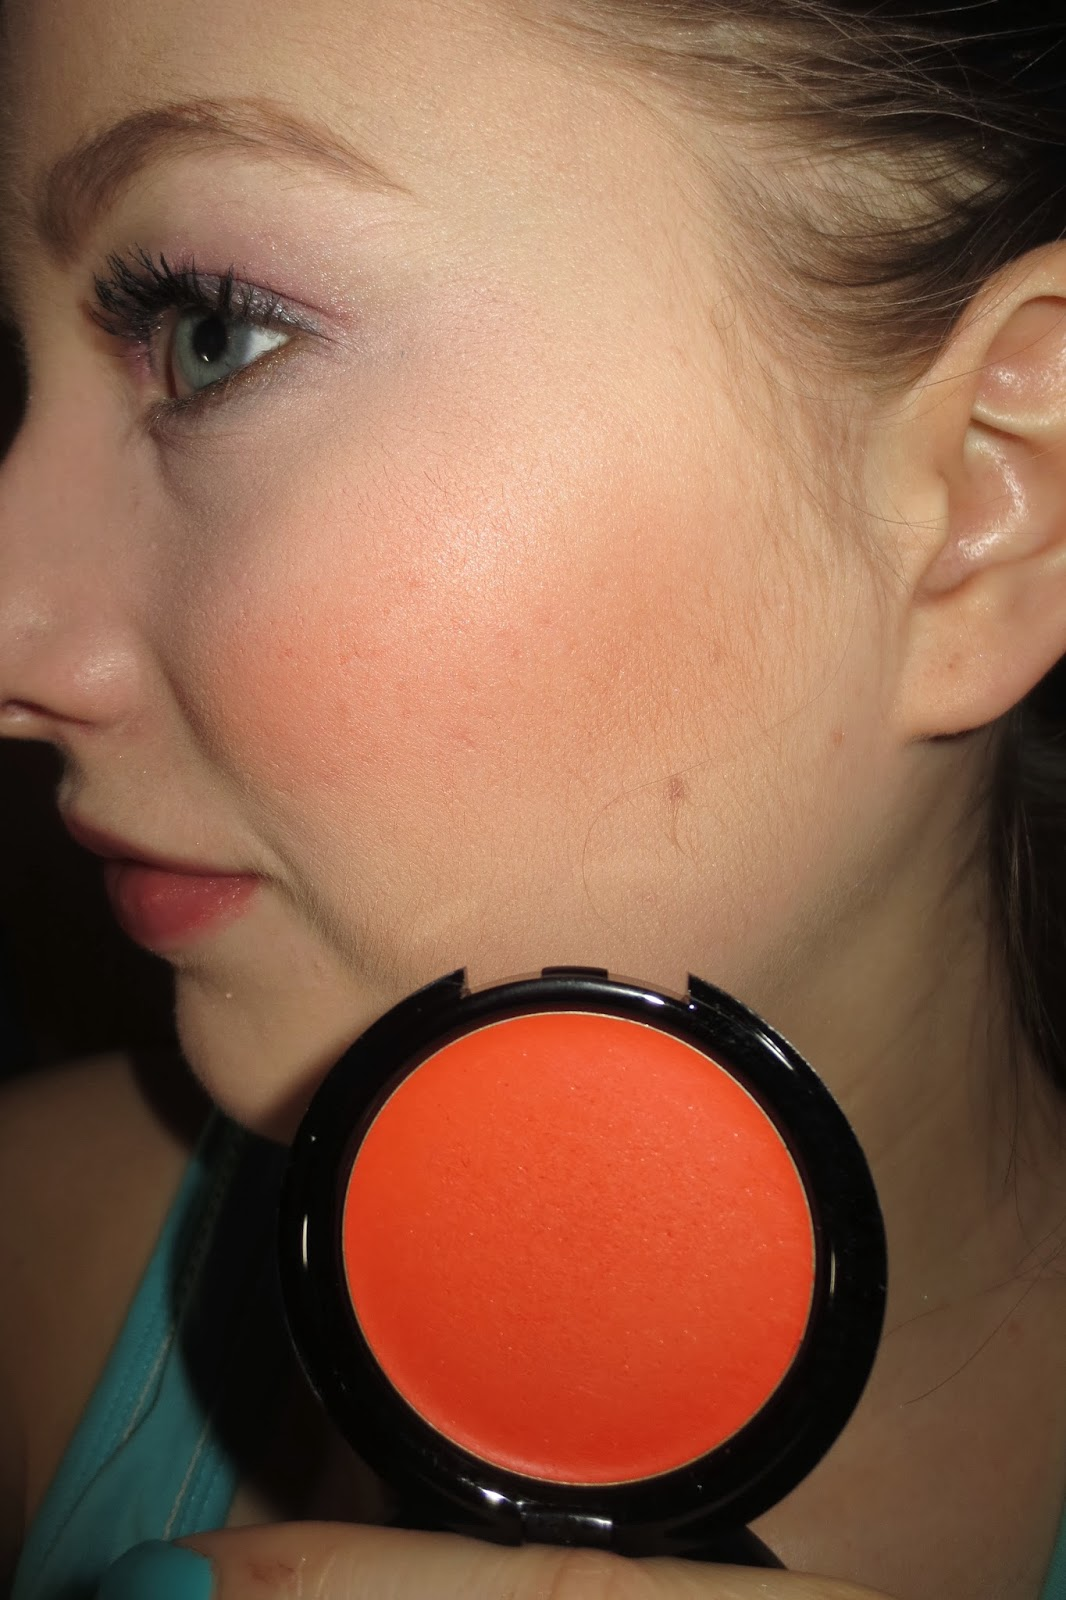 MAKE UP FOR EVER HD Blush #515 on cheeks